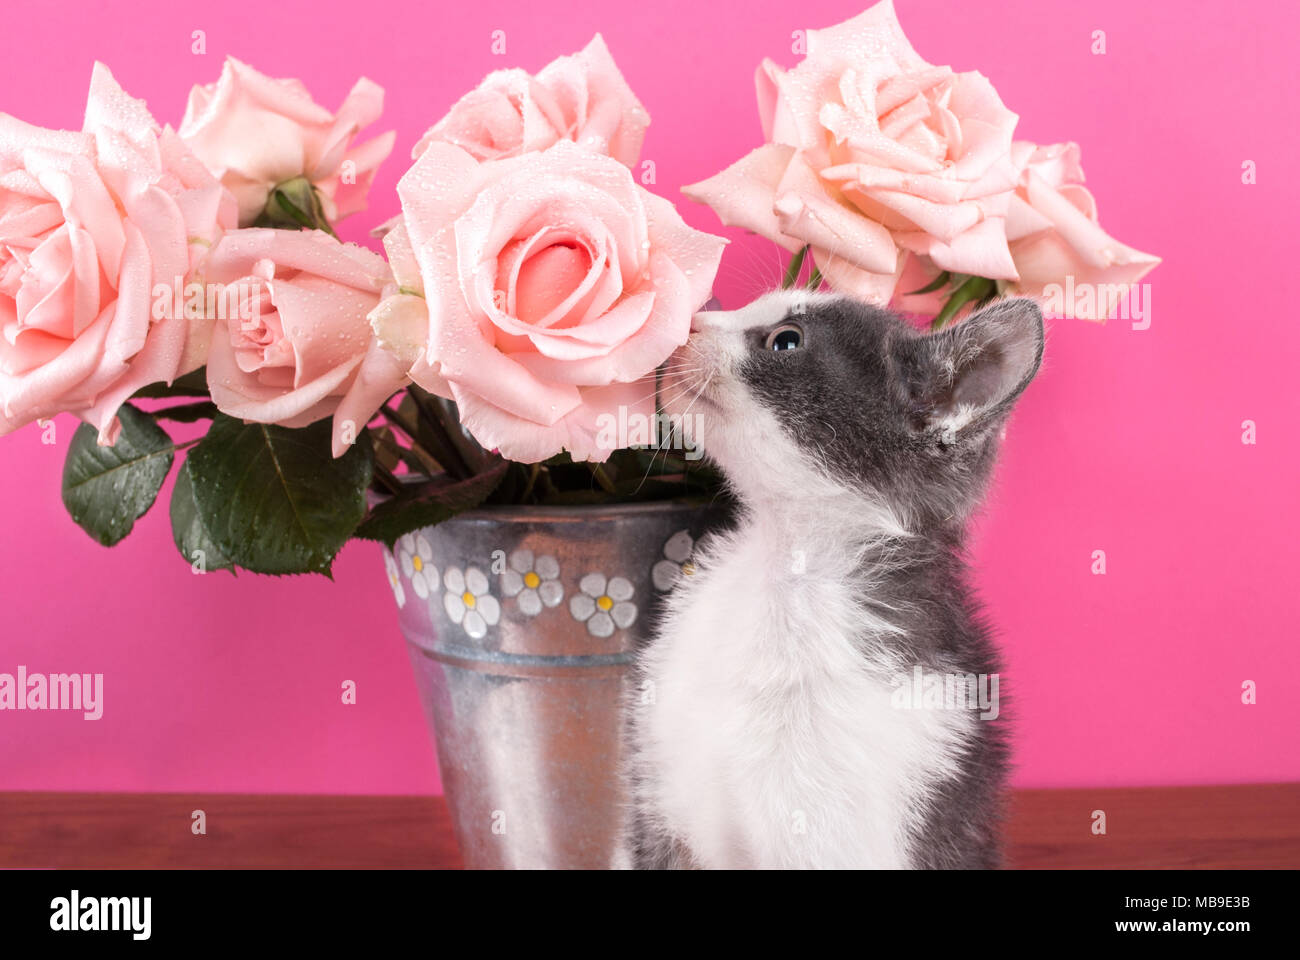 Cat smelling flower roses on a wooden table and pink background cat smelling flower roses on a wooden table and pink background mightylinksfo